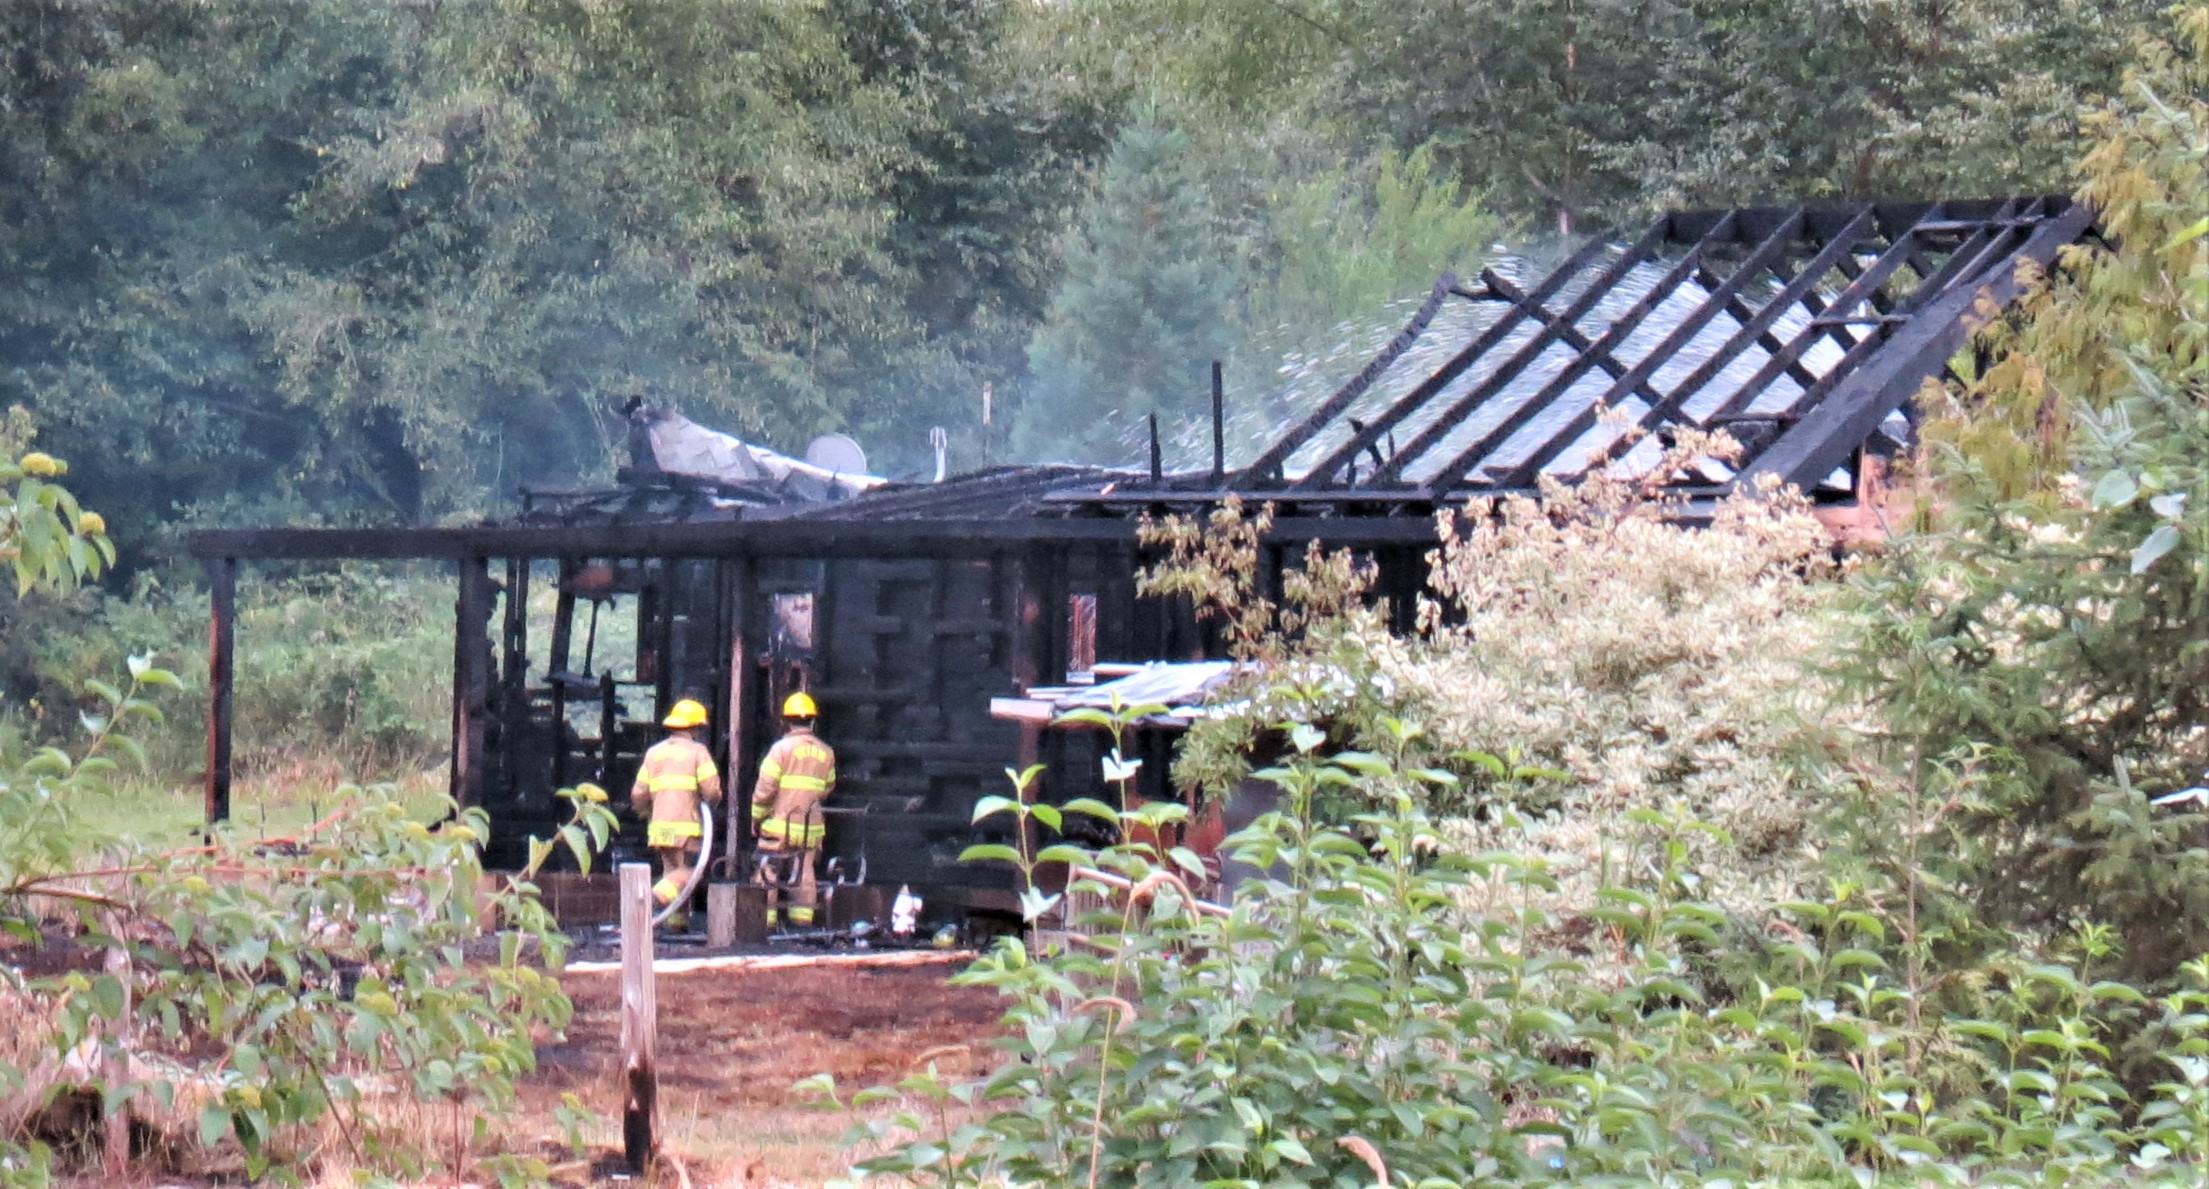 Scene of a residential fire in Deming (August 15, 2021). Photo: Whatcom News